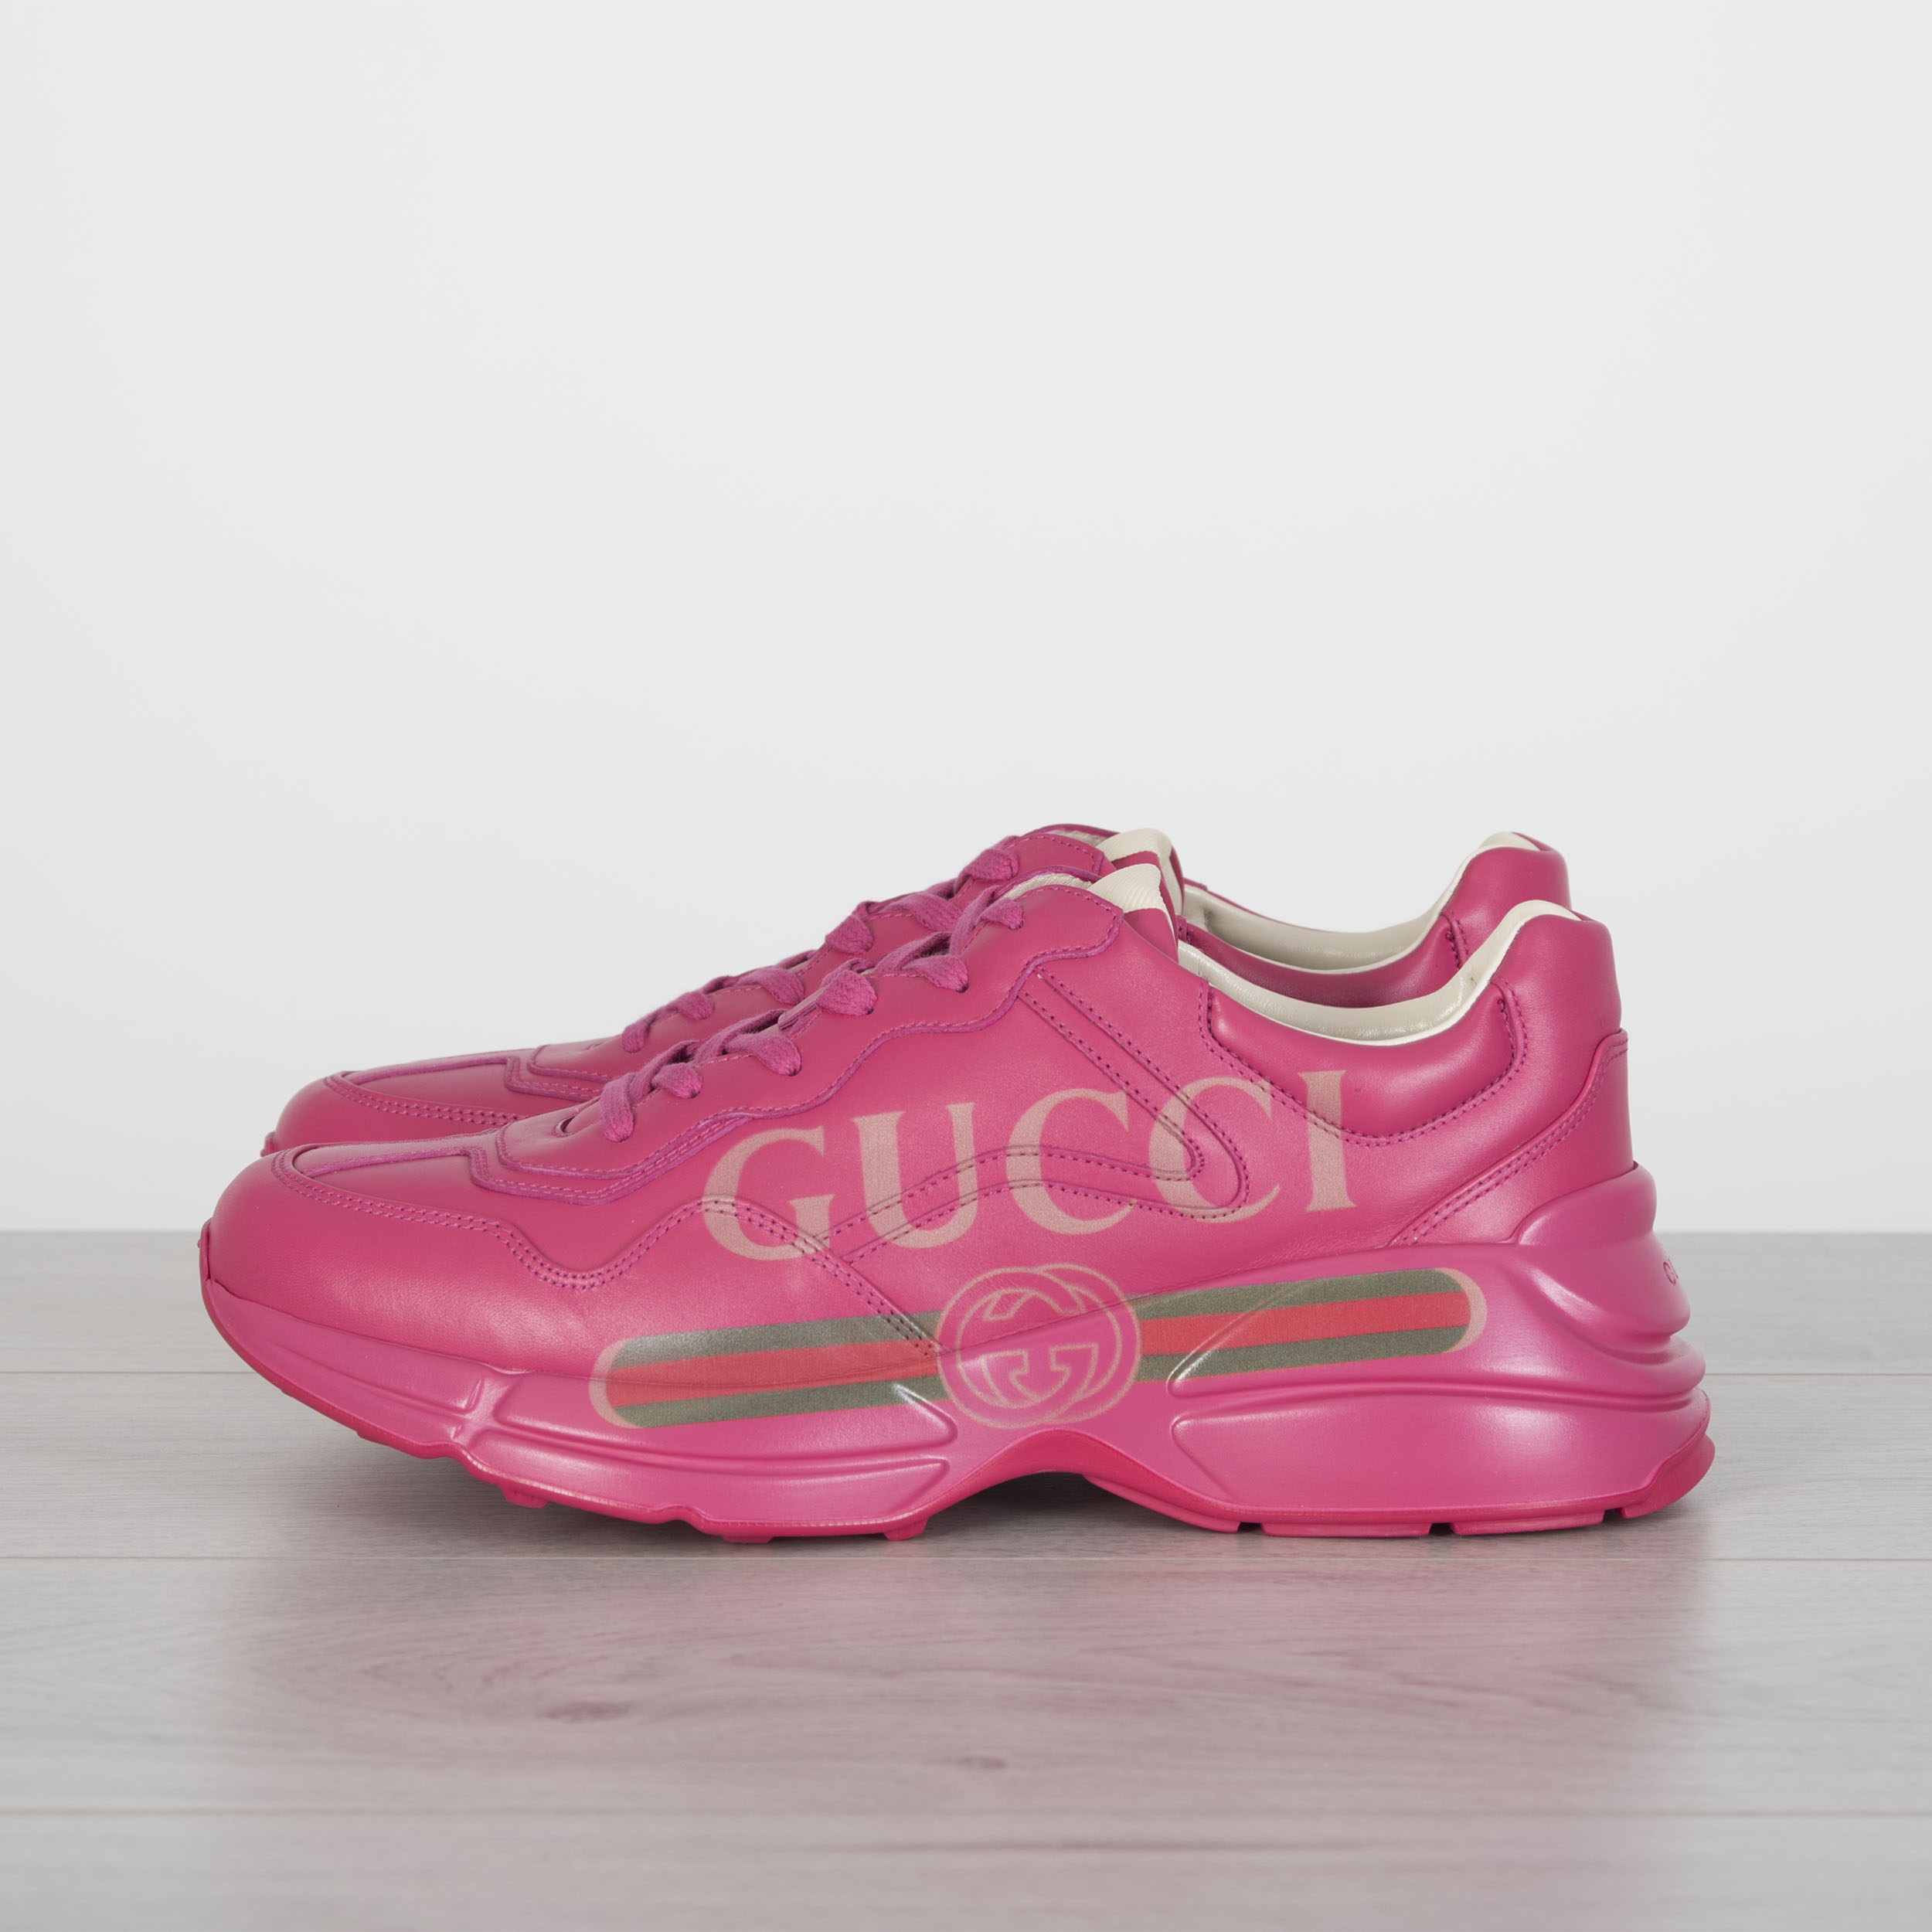 Details about GUCCI 890  Rhyton Gucci Logo Sneakers In Pink Leather dcd54ad6fe